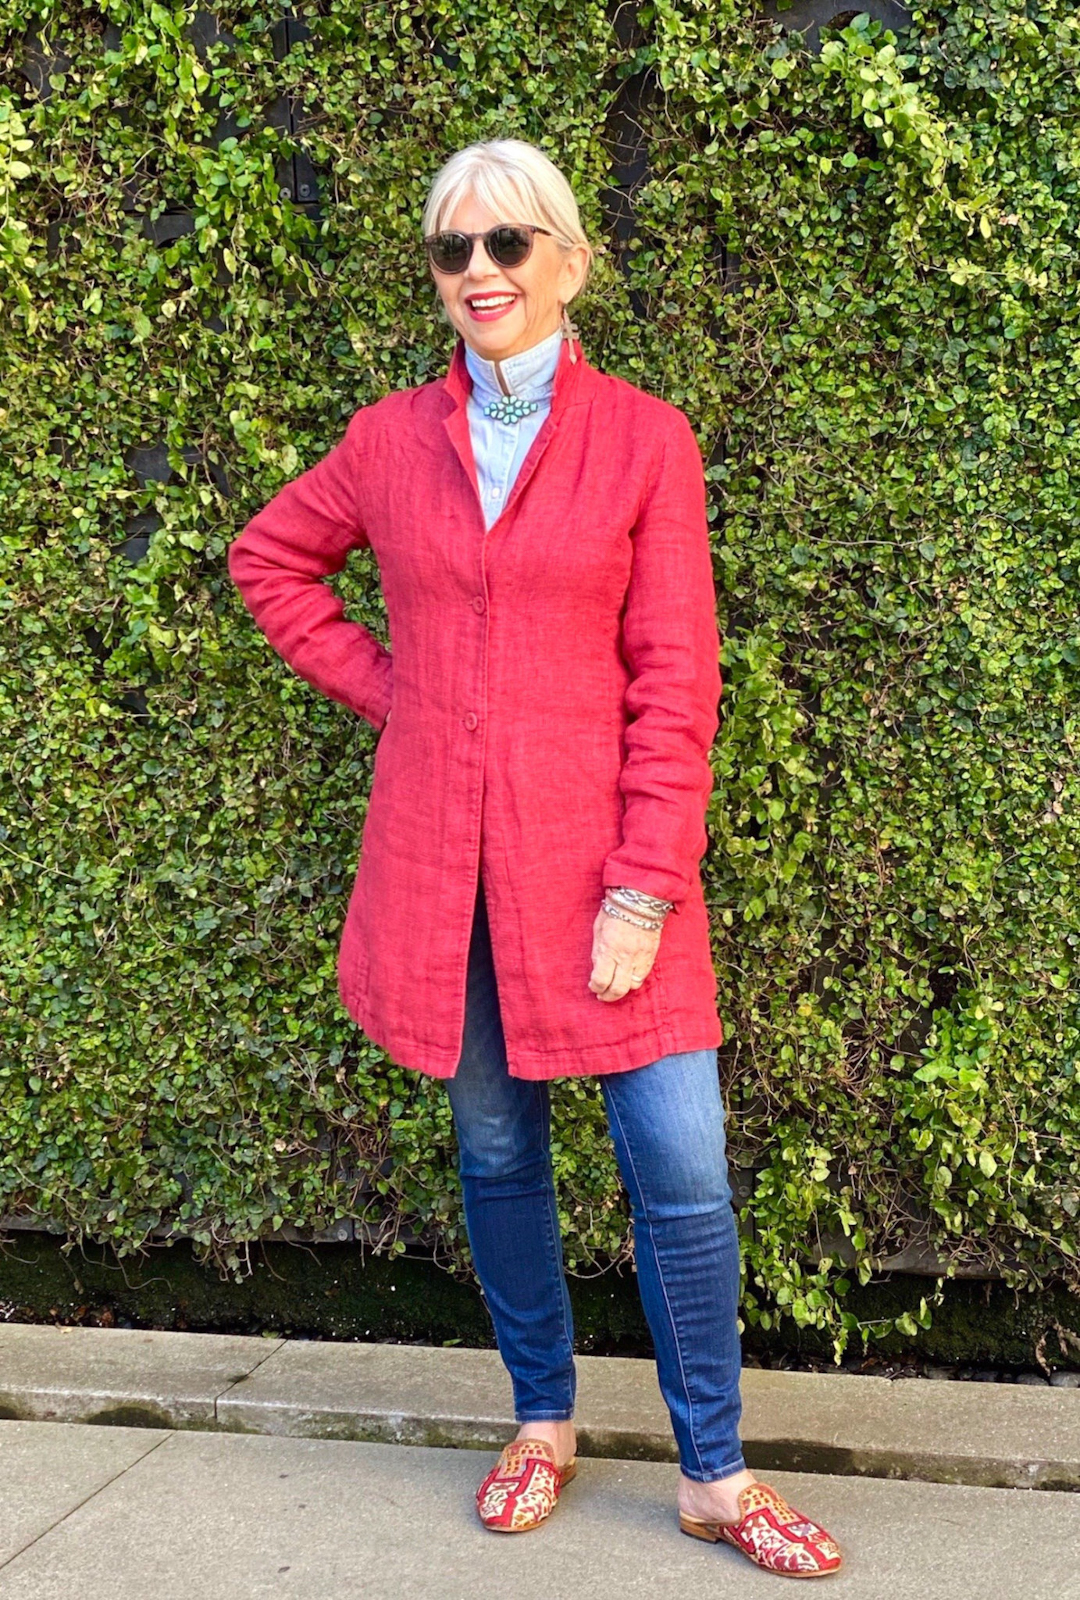 Over 50 Fashion Blogger Cindy Hattersley in Eileen Fisher and Chambray